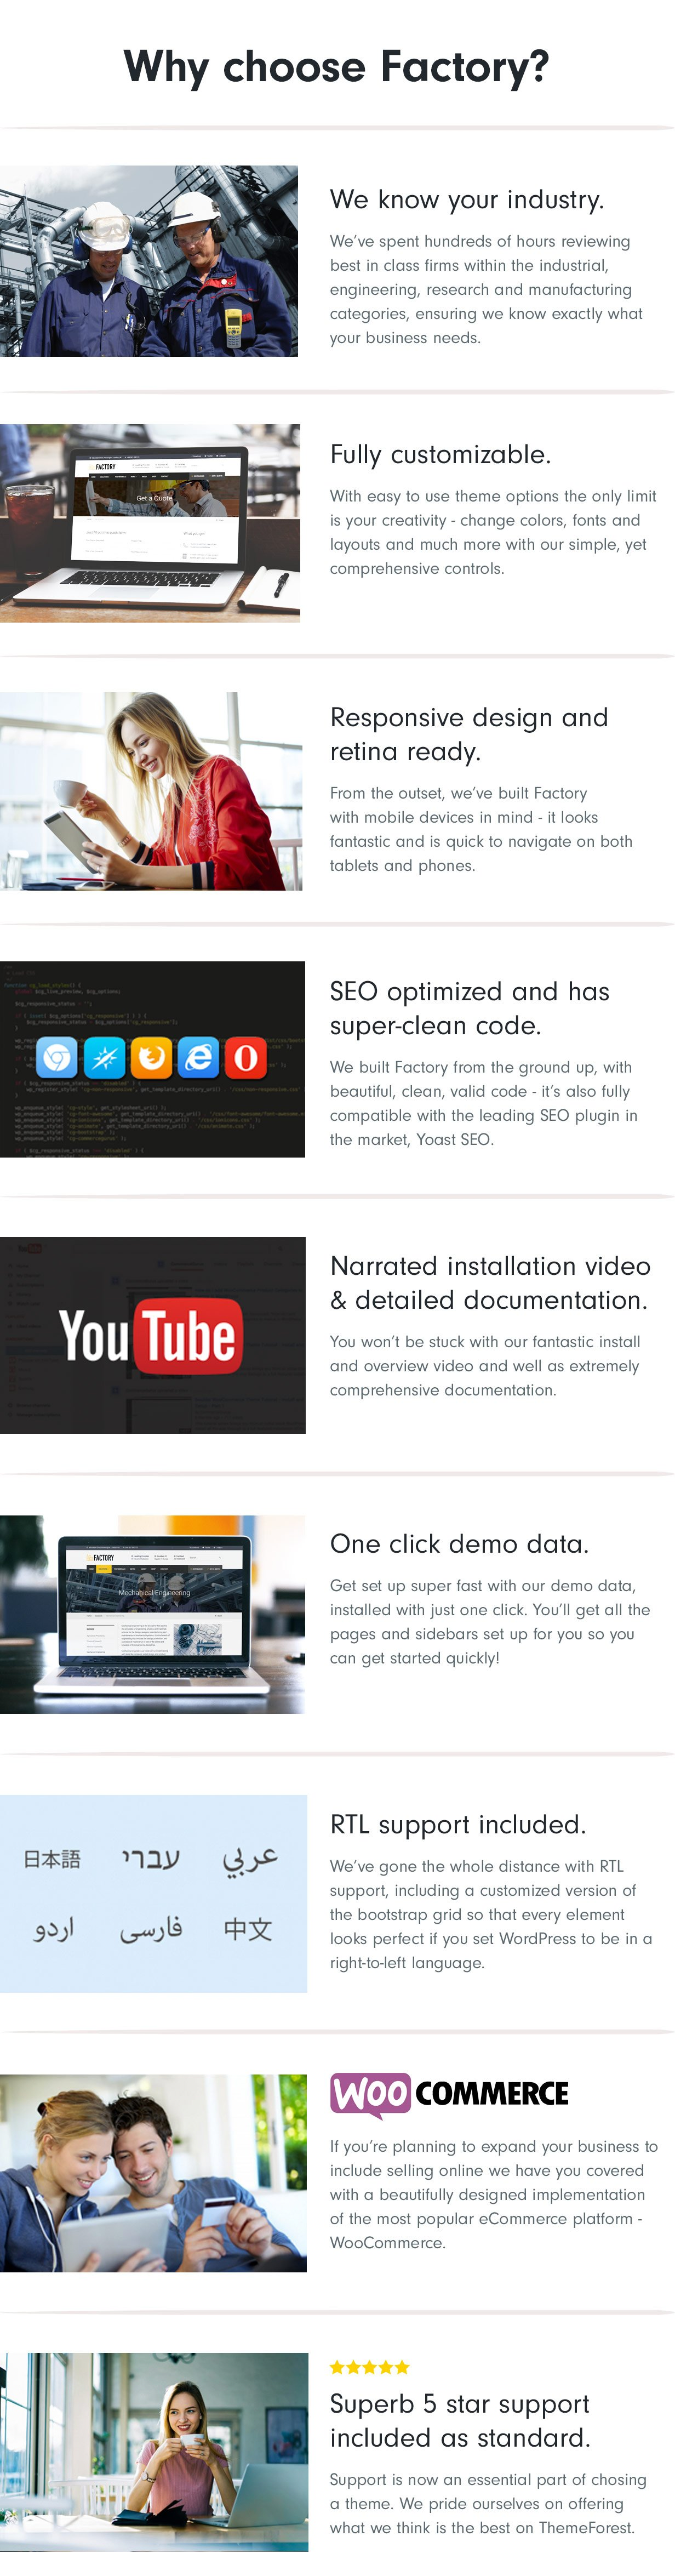 features4 - Factory - Industrial Business WordPress Theme